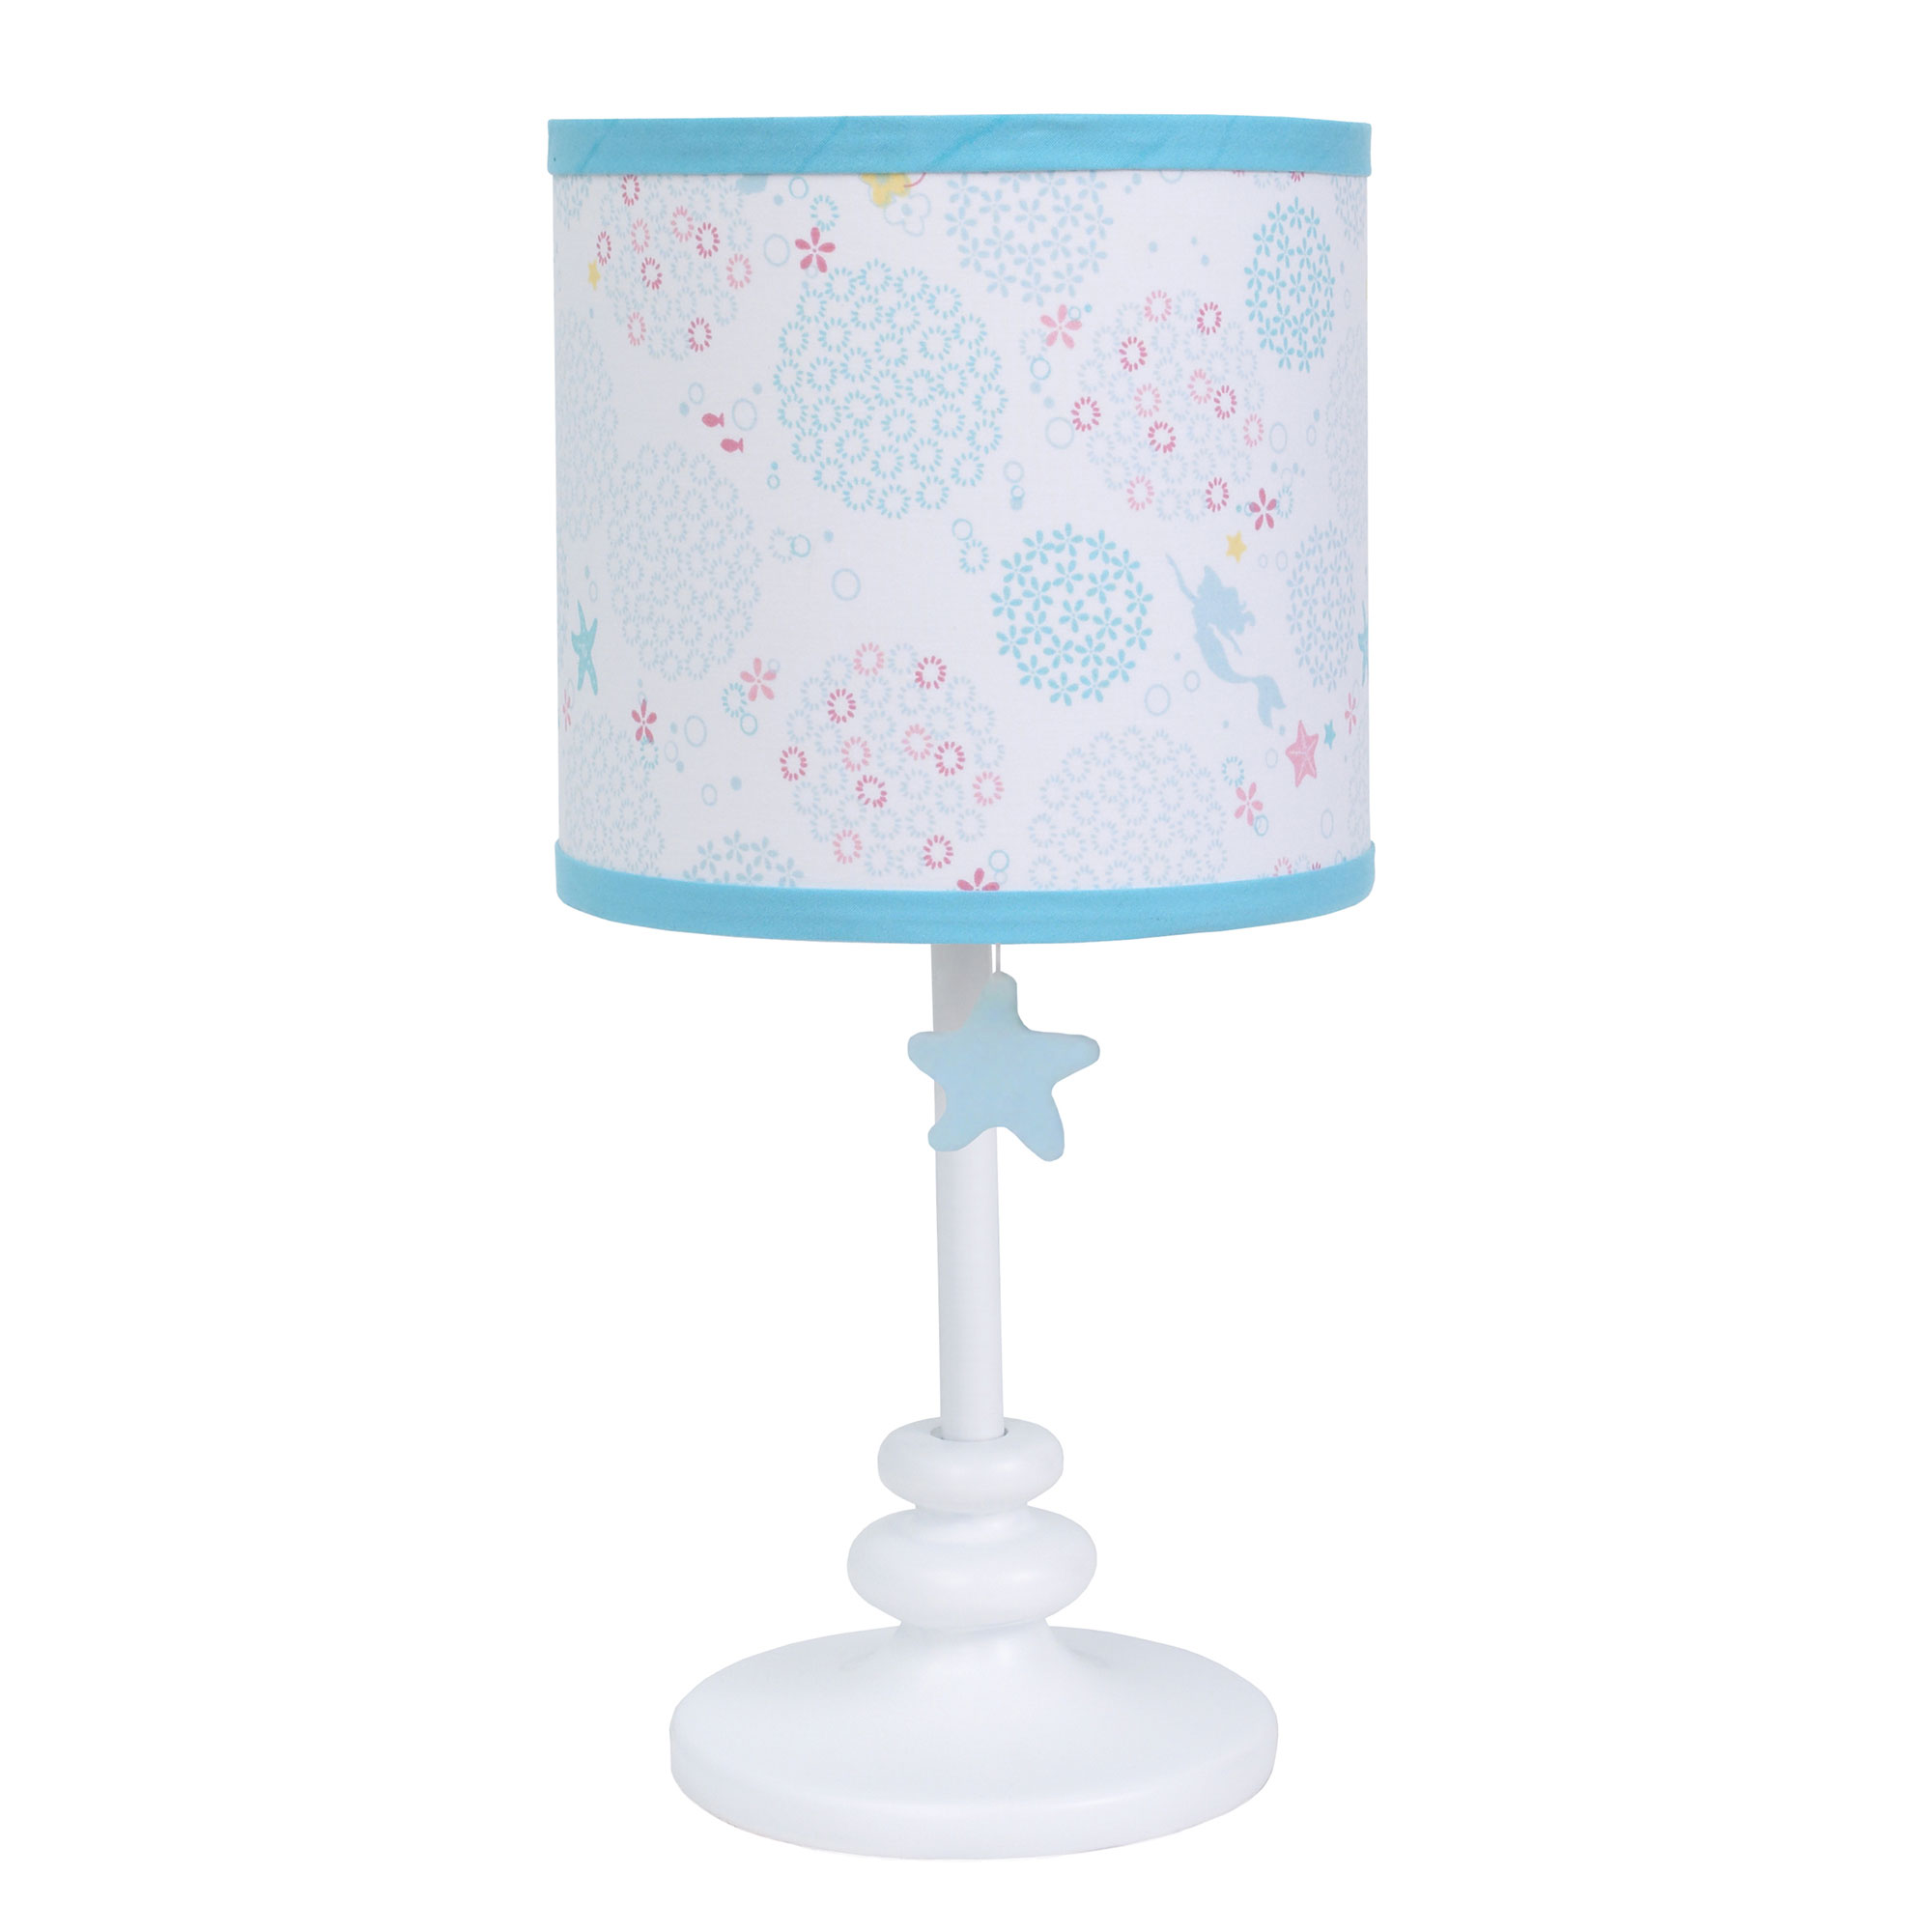 Baby Girl Lamp and Shade by Disney Ariel Sea Princess Collection The Little Mermaid by Crown Crafts